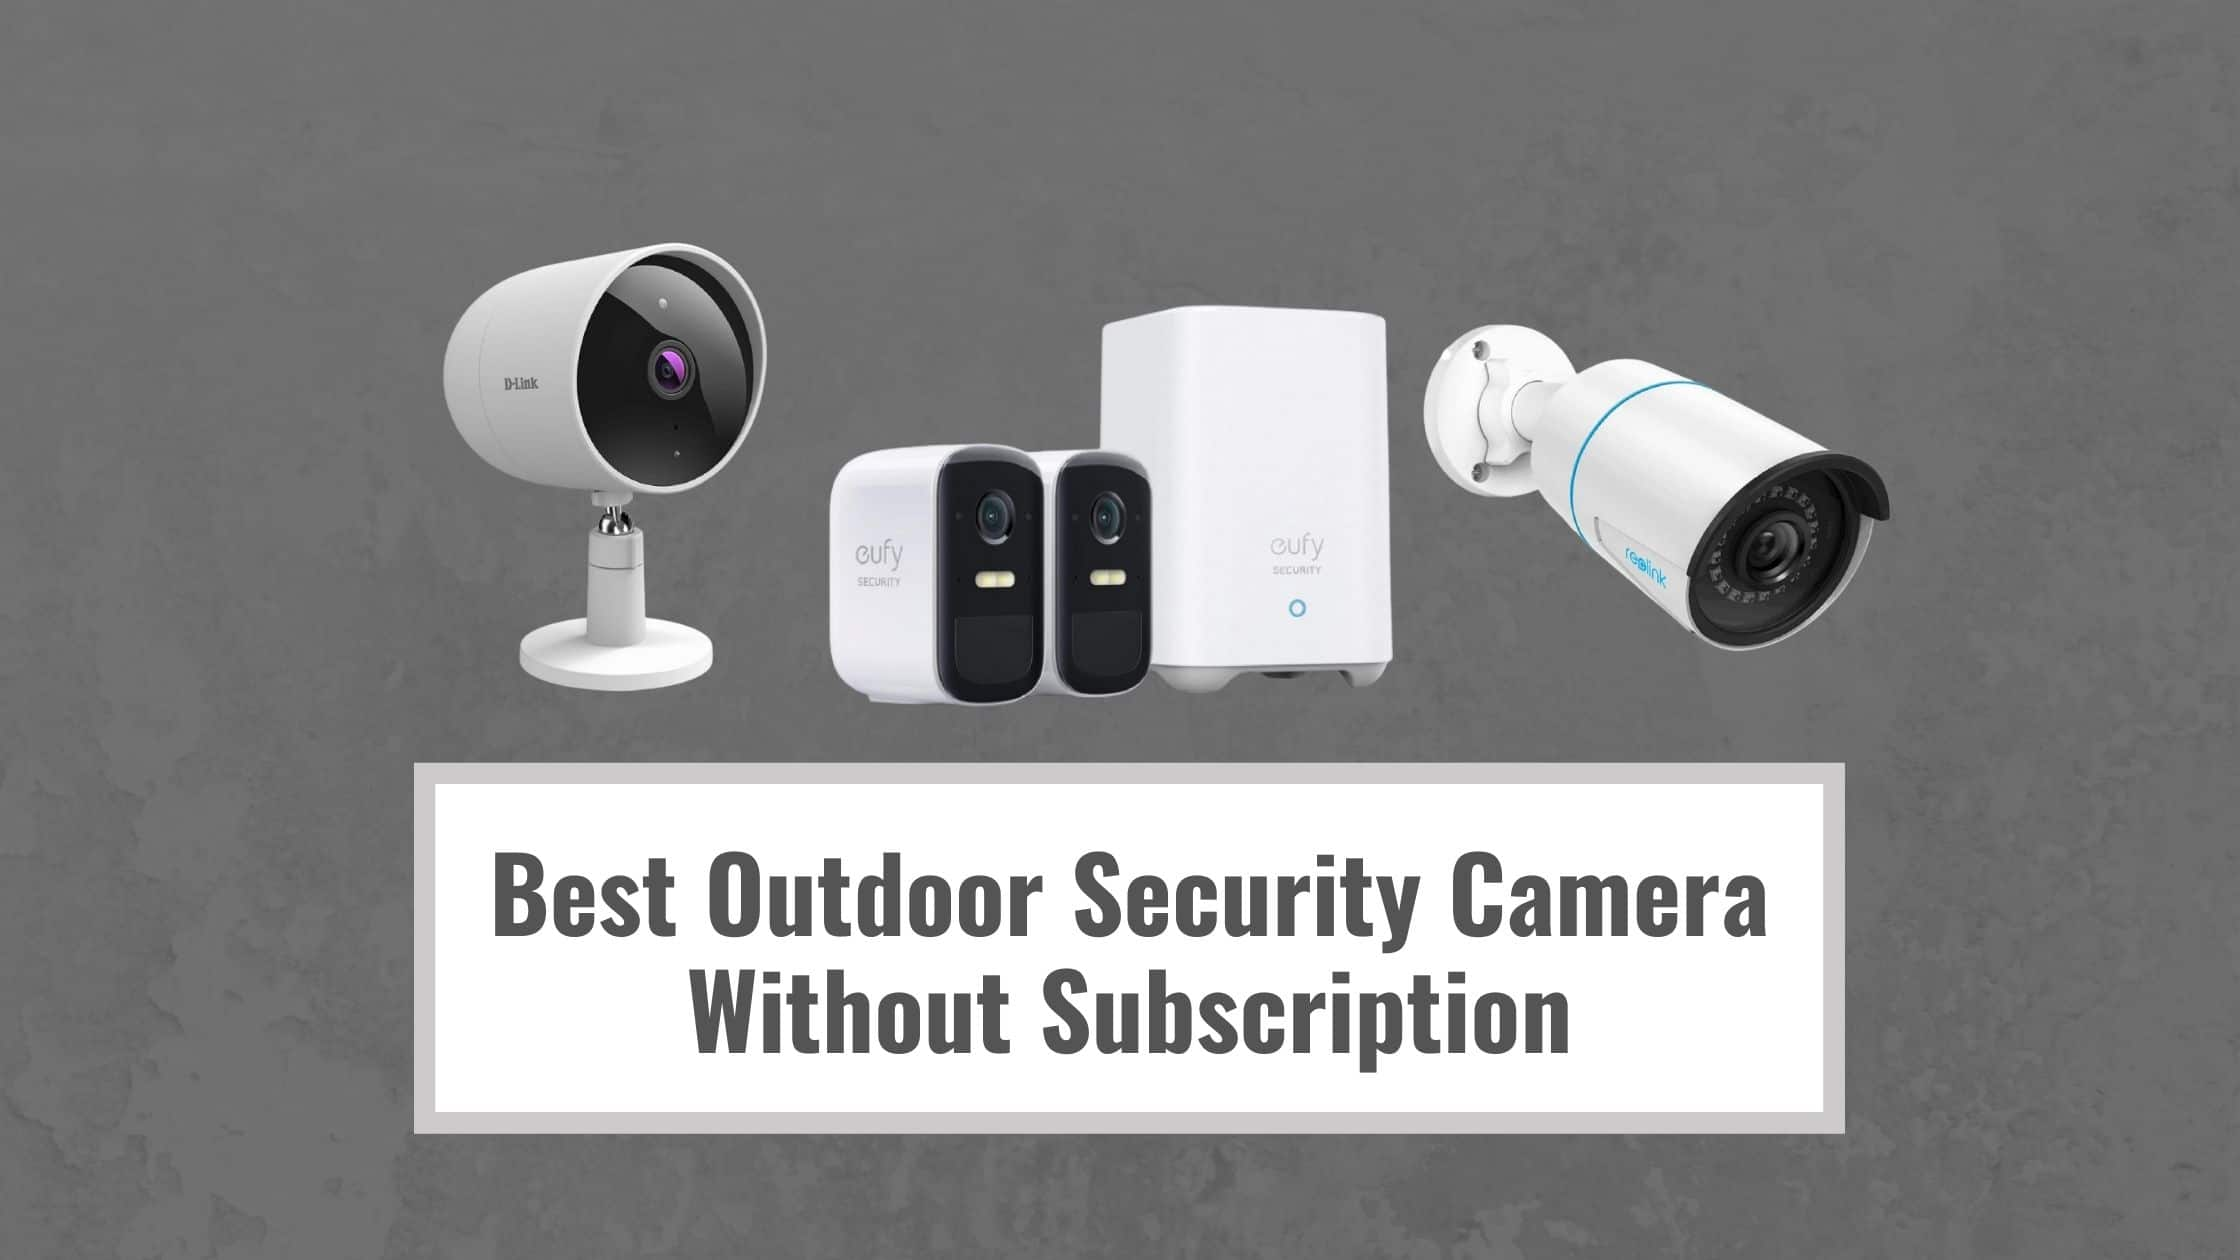 Best Outdoor Security Camera Without Subscription